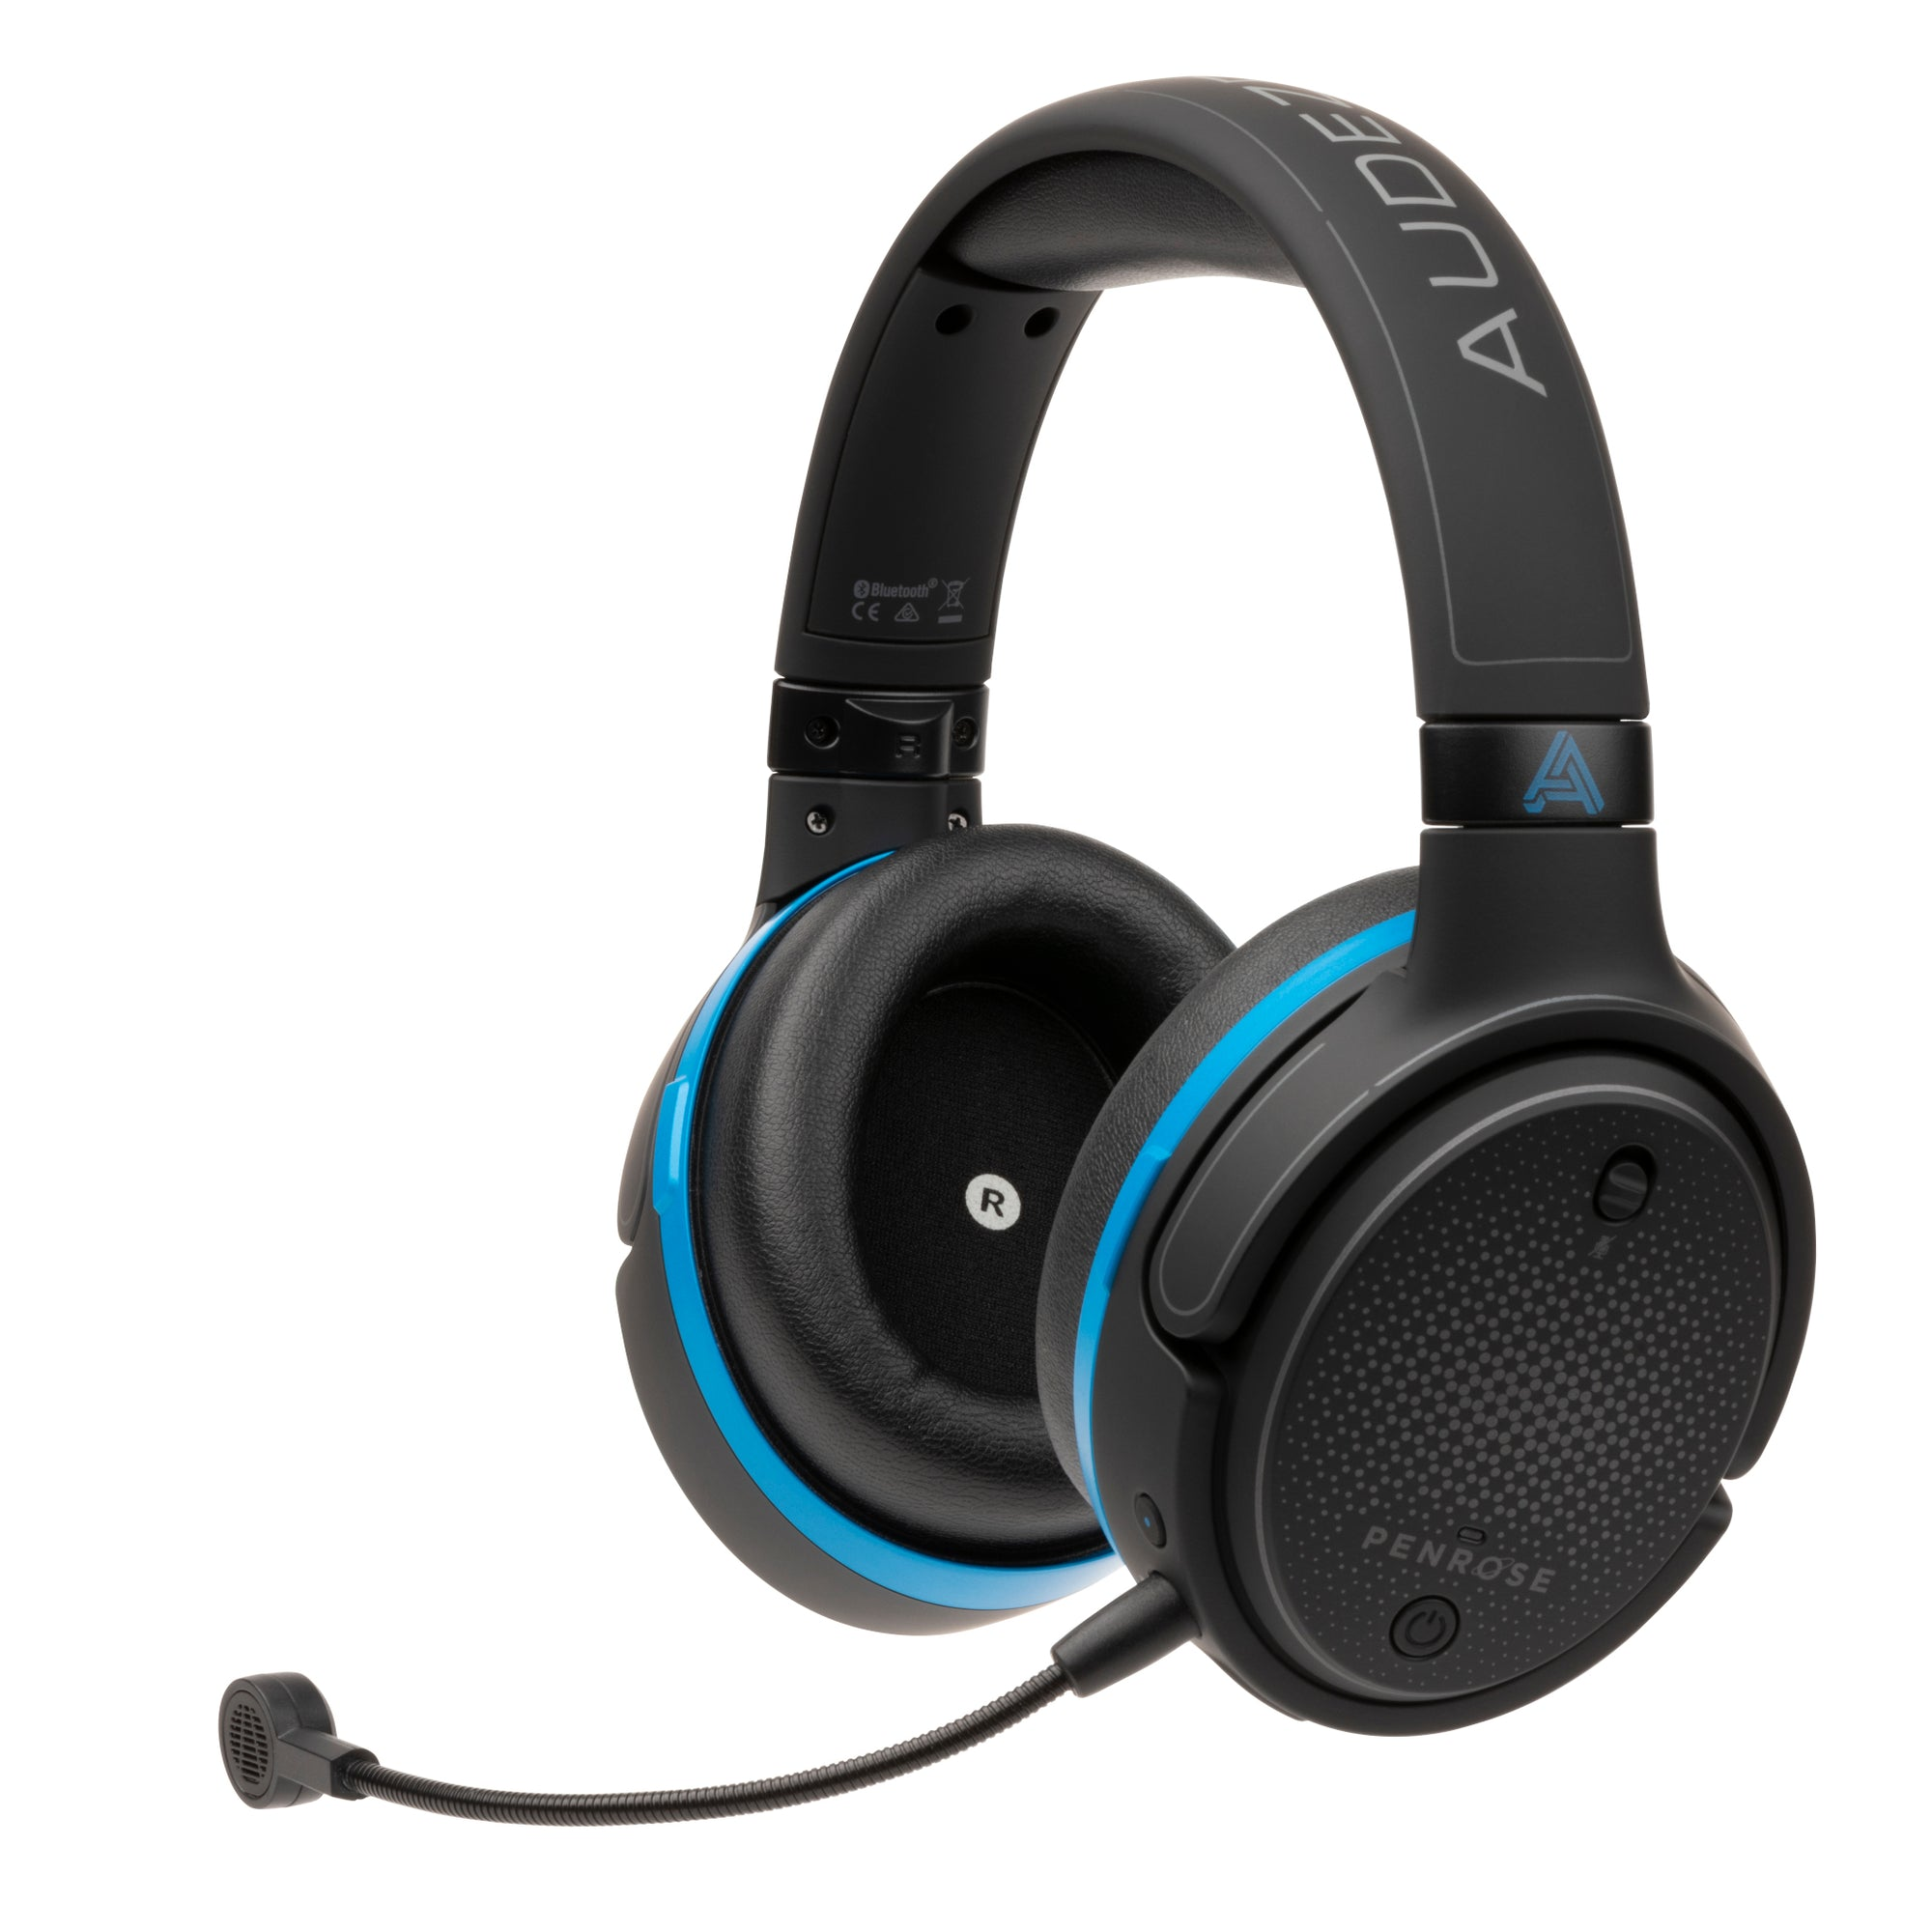 Audeze Penrose Wireless Audiophile Gaming Headphones for Playstation 4/5 - PC and Mac - Refurbished